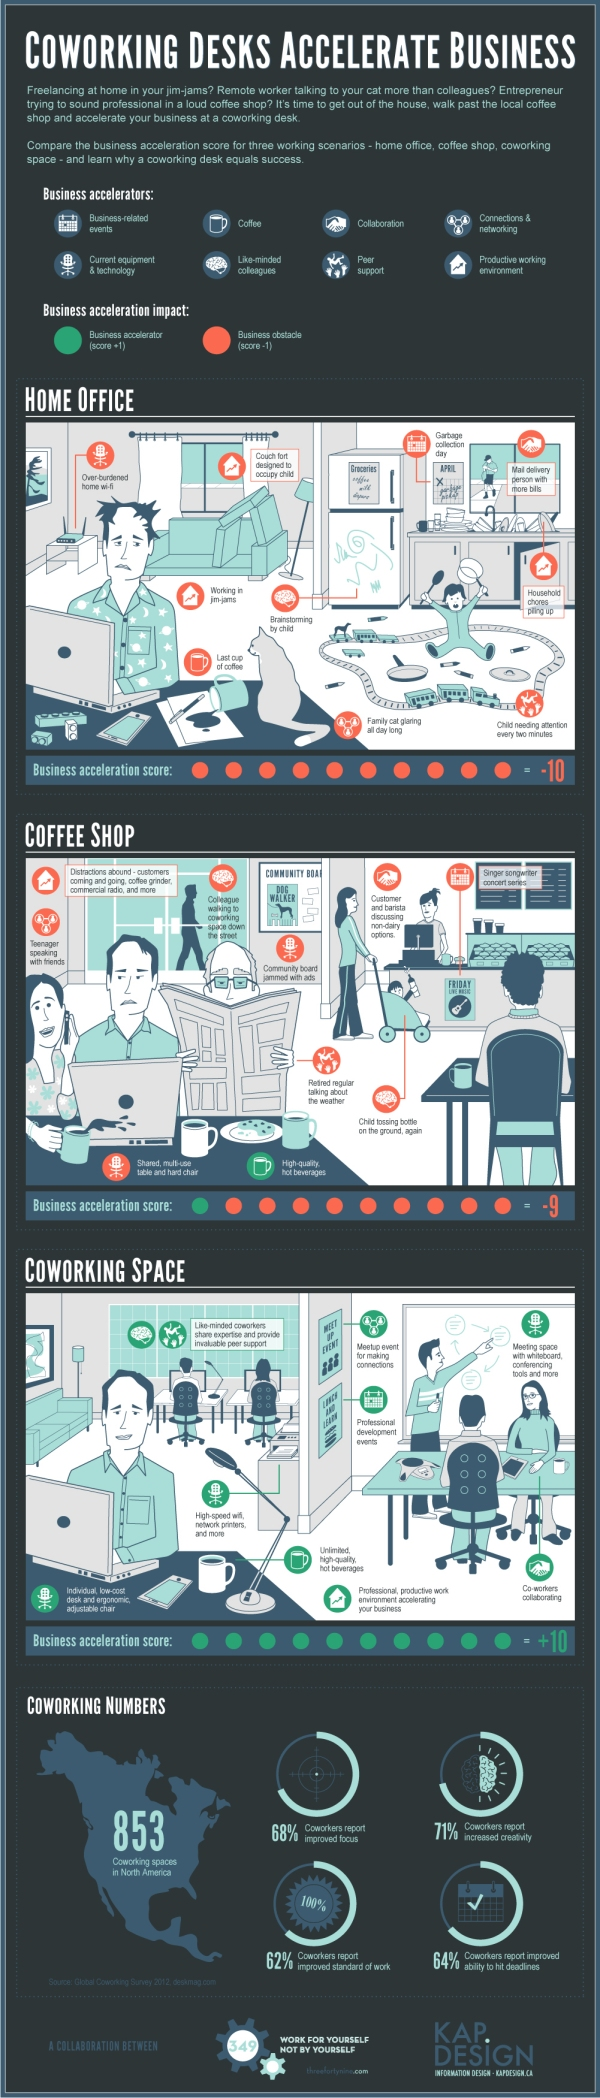 Coworking Infographic by KAP Design